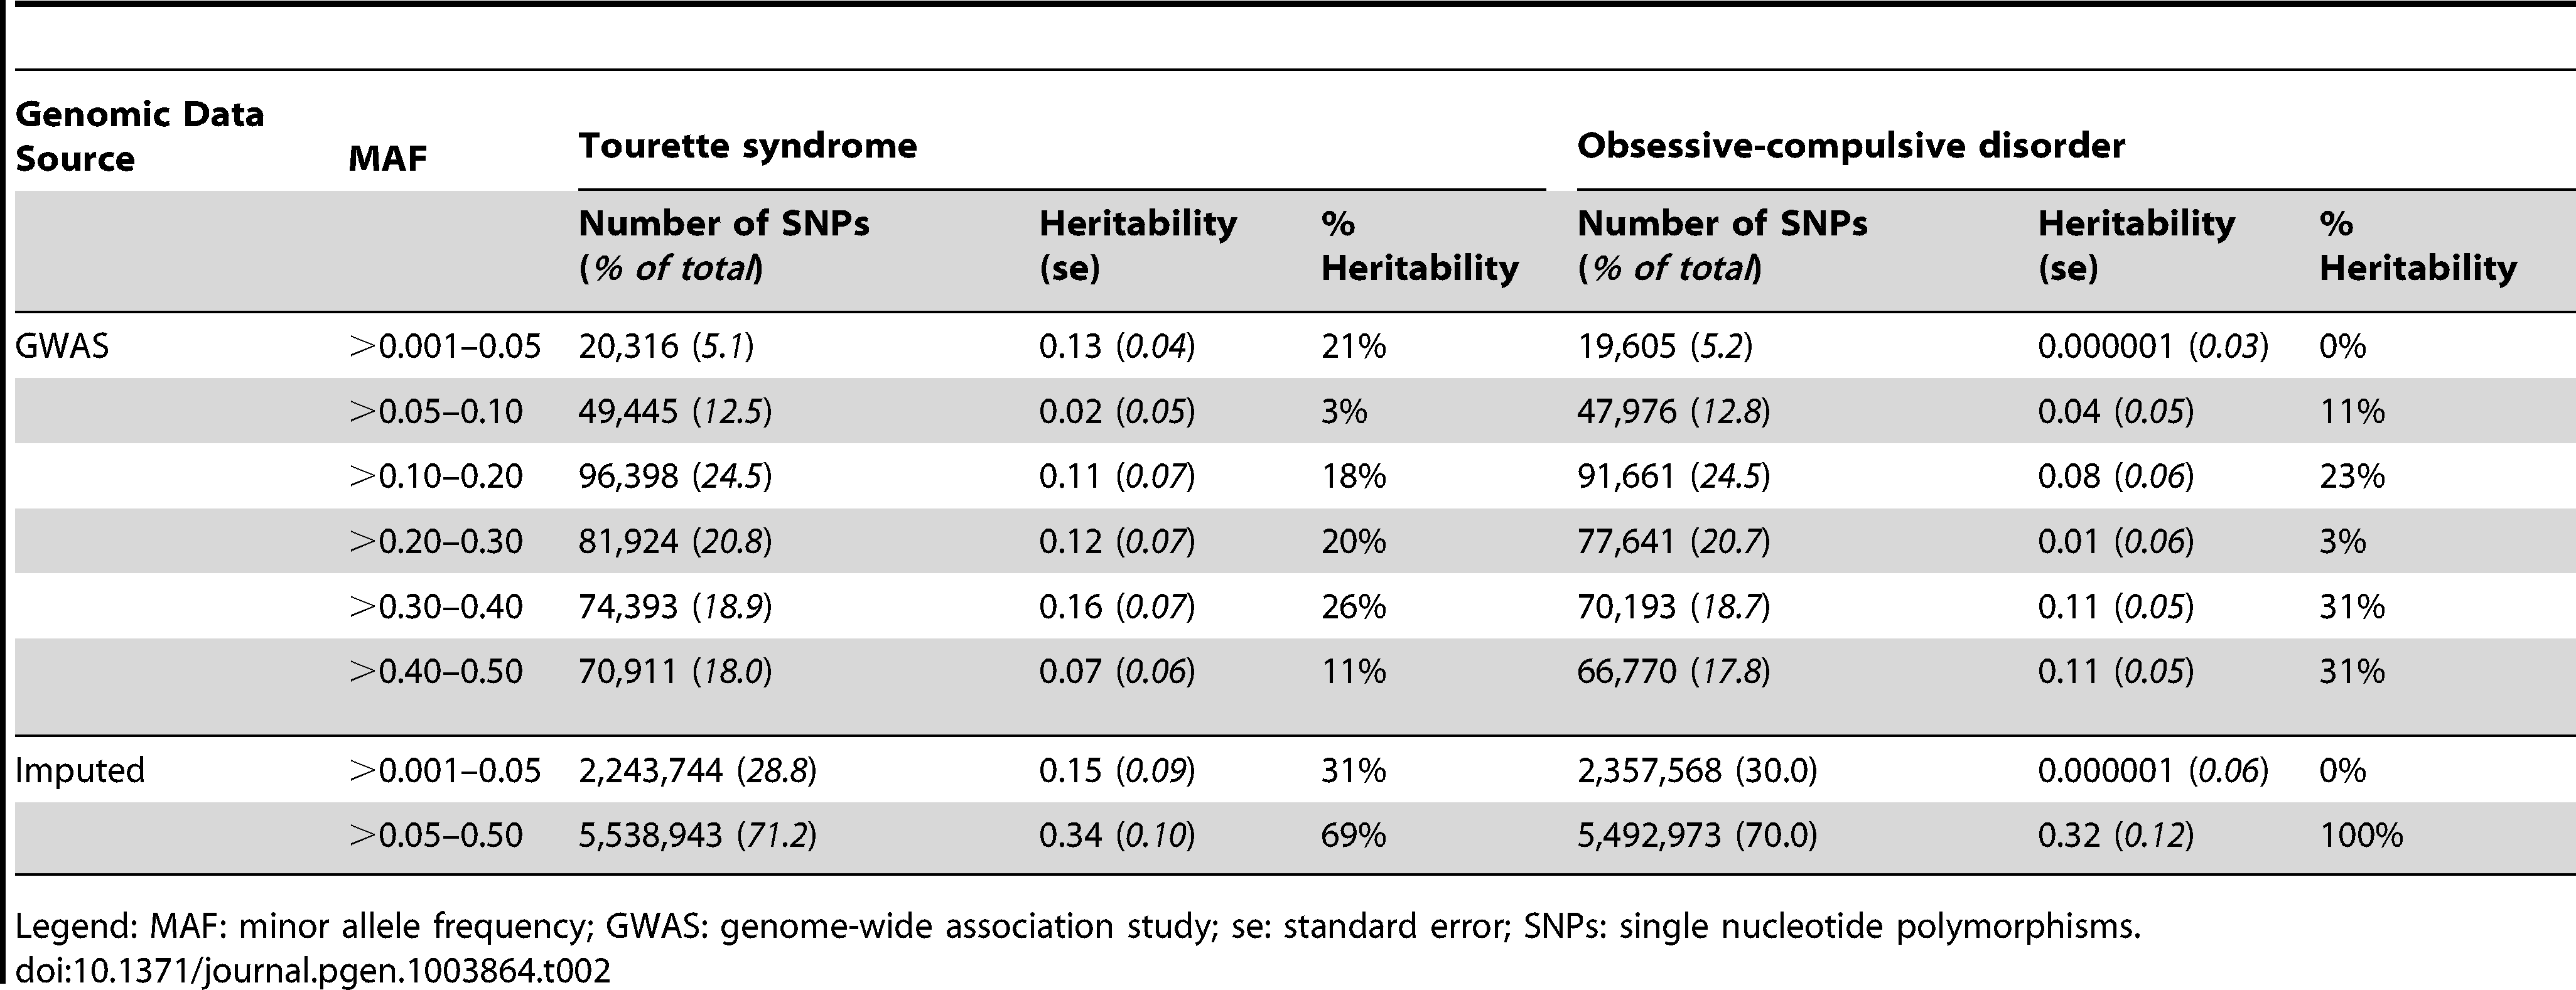 GWAS and imputed heritability partitioned by minor allele frequency.